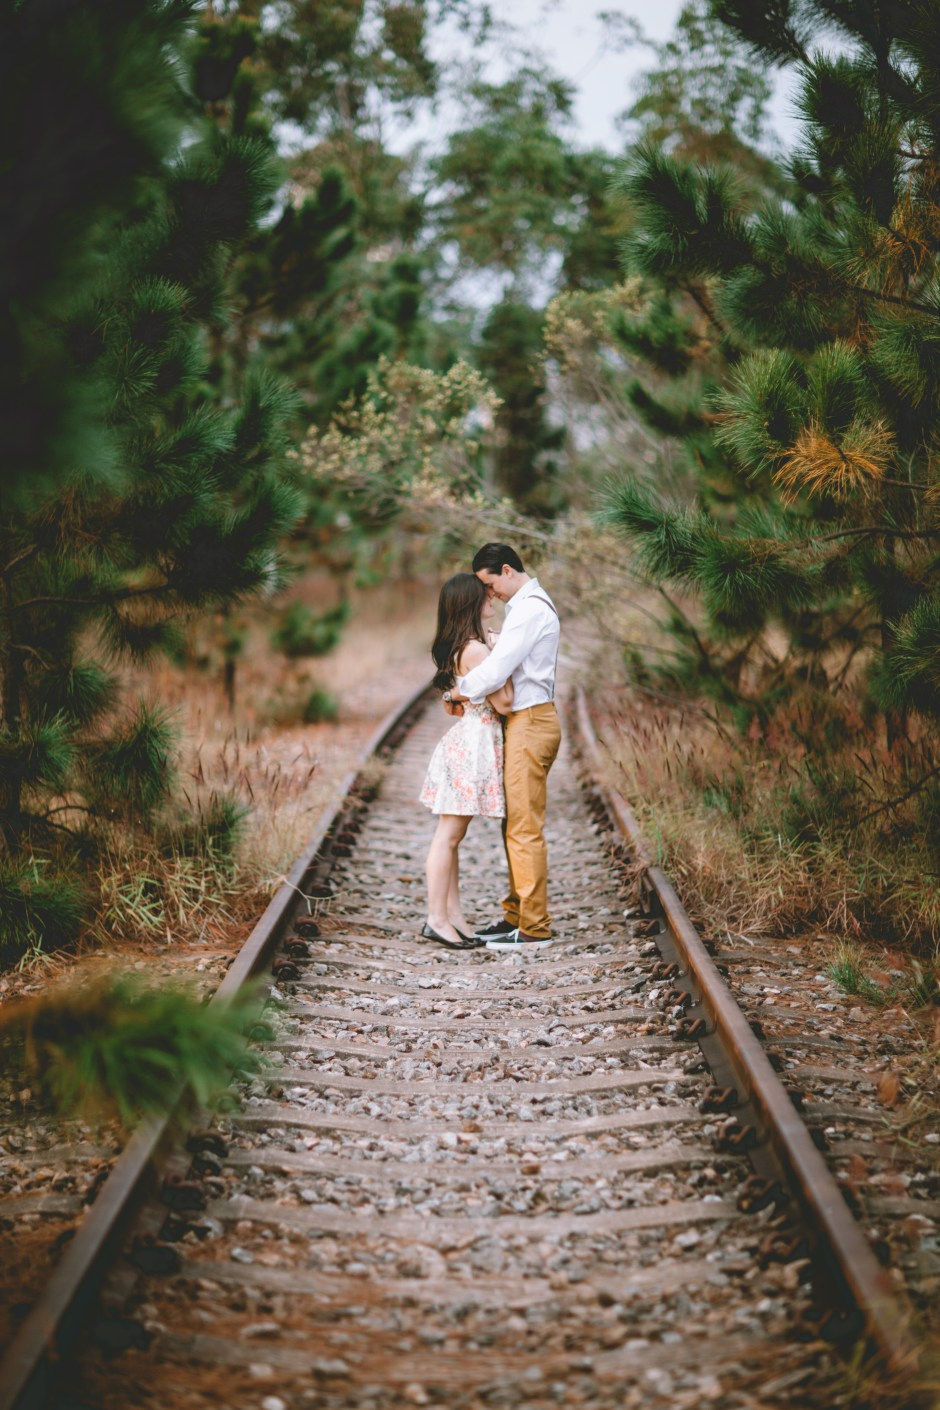 Wallpaper Photography Girl Couple On Railroad 183 Free Stock Photo